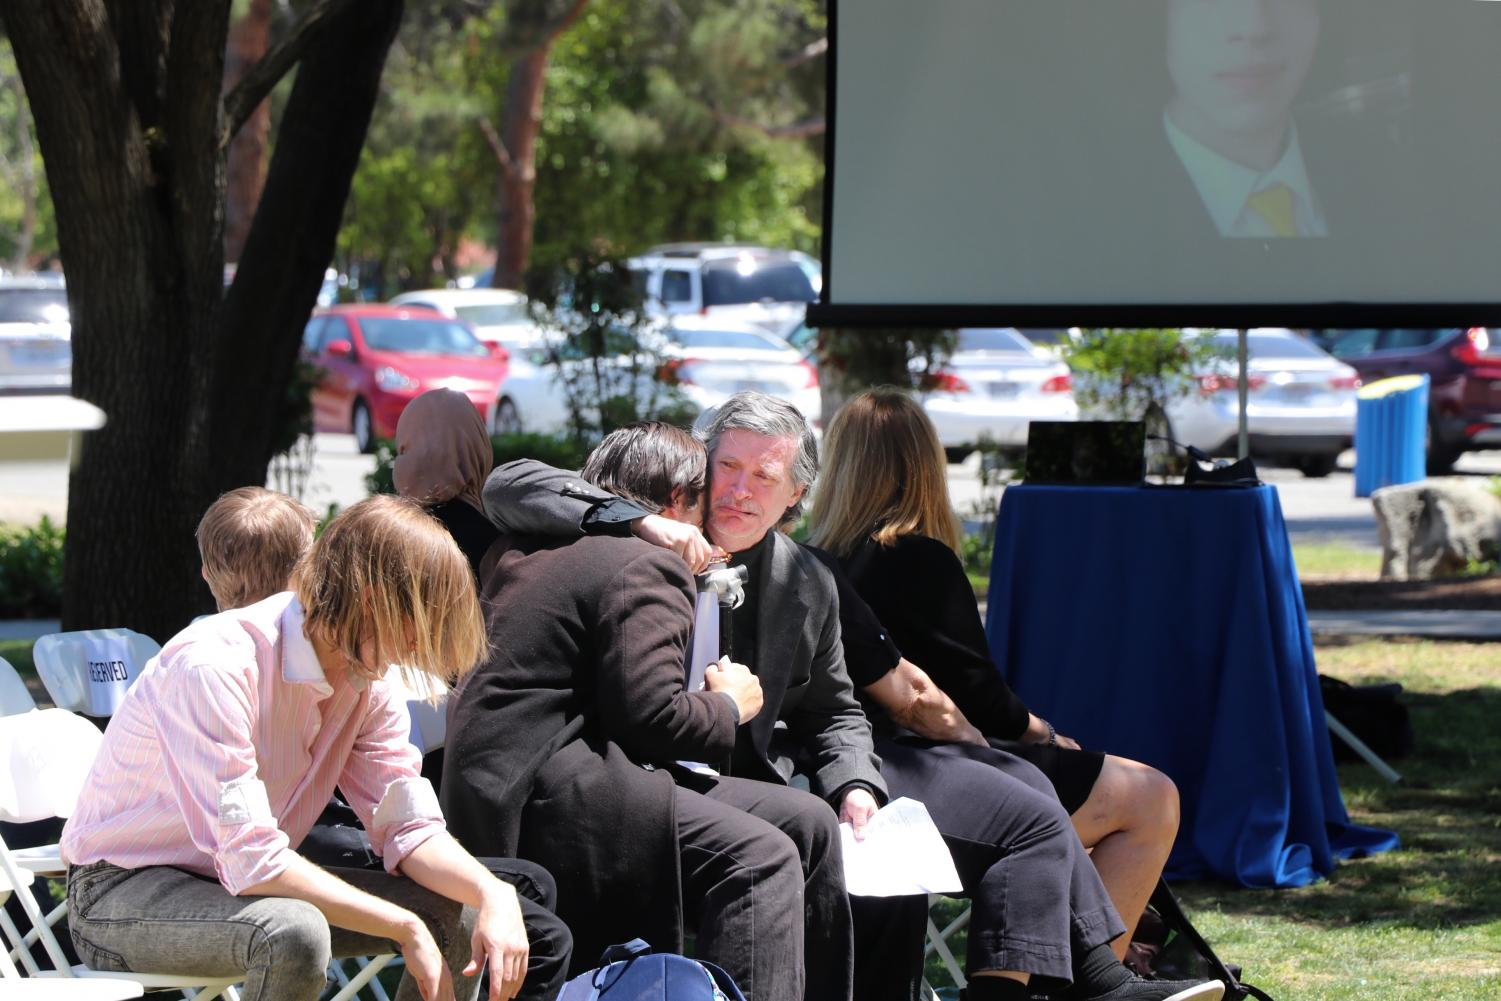 Leviak Kelly, father to Jason Quinn Kelly, comforted his son Andrew Kelly during a brief stream of pictures and videos in Quinn's memory, near the conclusion of Quinn's memorial service at CSU Bakersfield on April 24.  Sergio Hernandez/The Runner